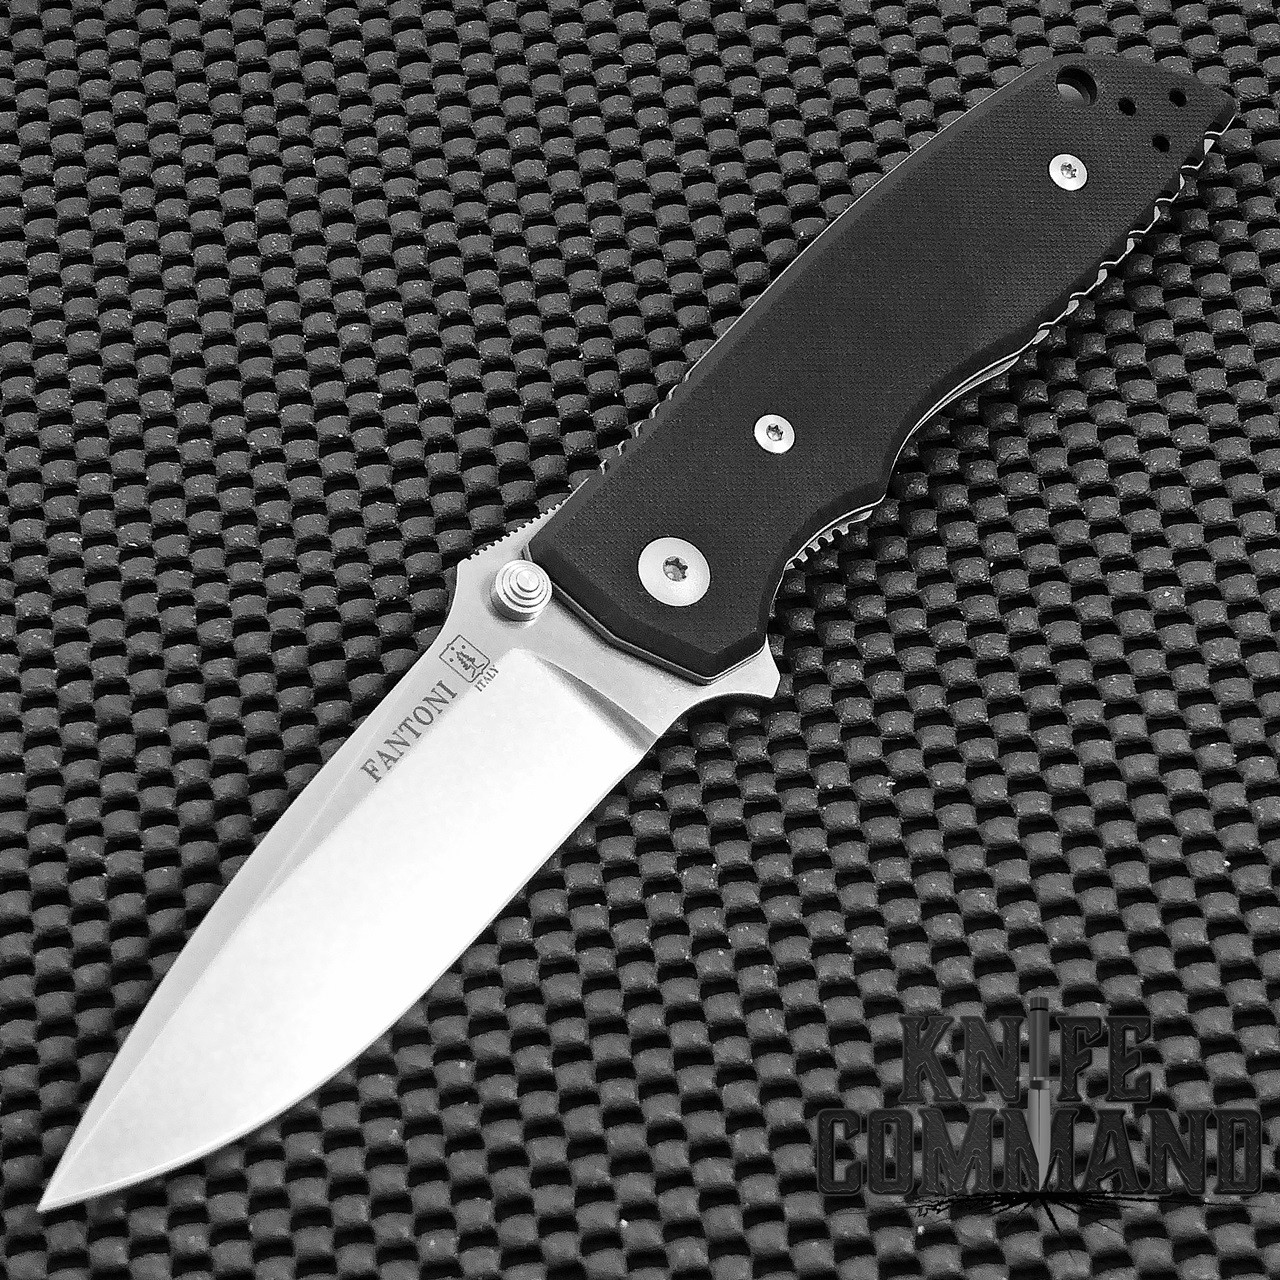 Fantoni HB 01 William Harsey Limited Edition CPM S125V G10 Combat Folder Tactical Knife.  Top of the line.